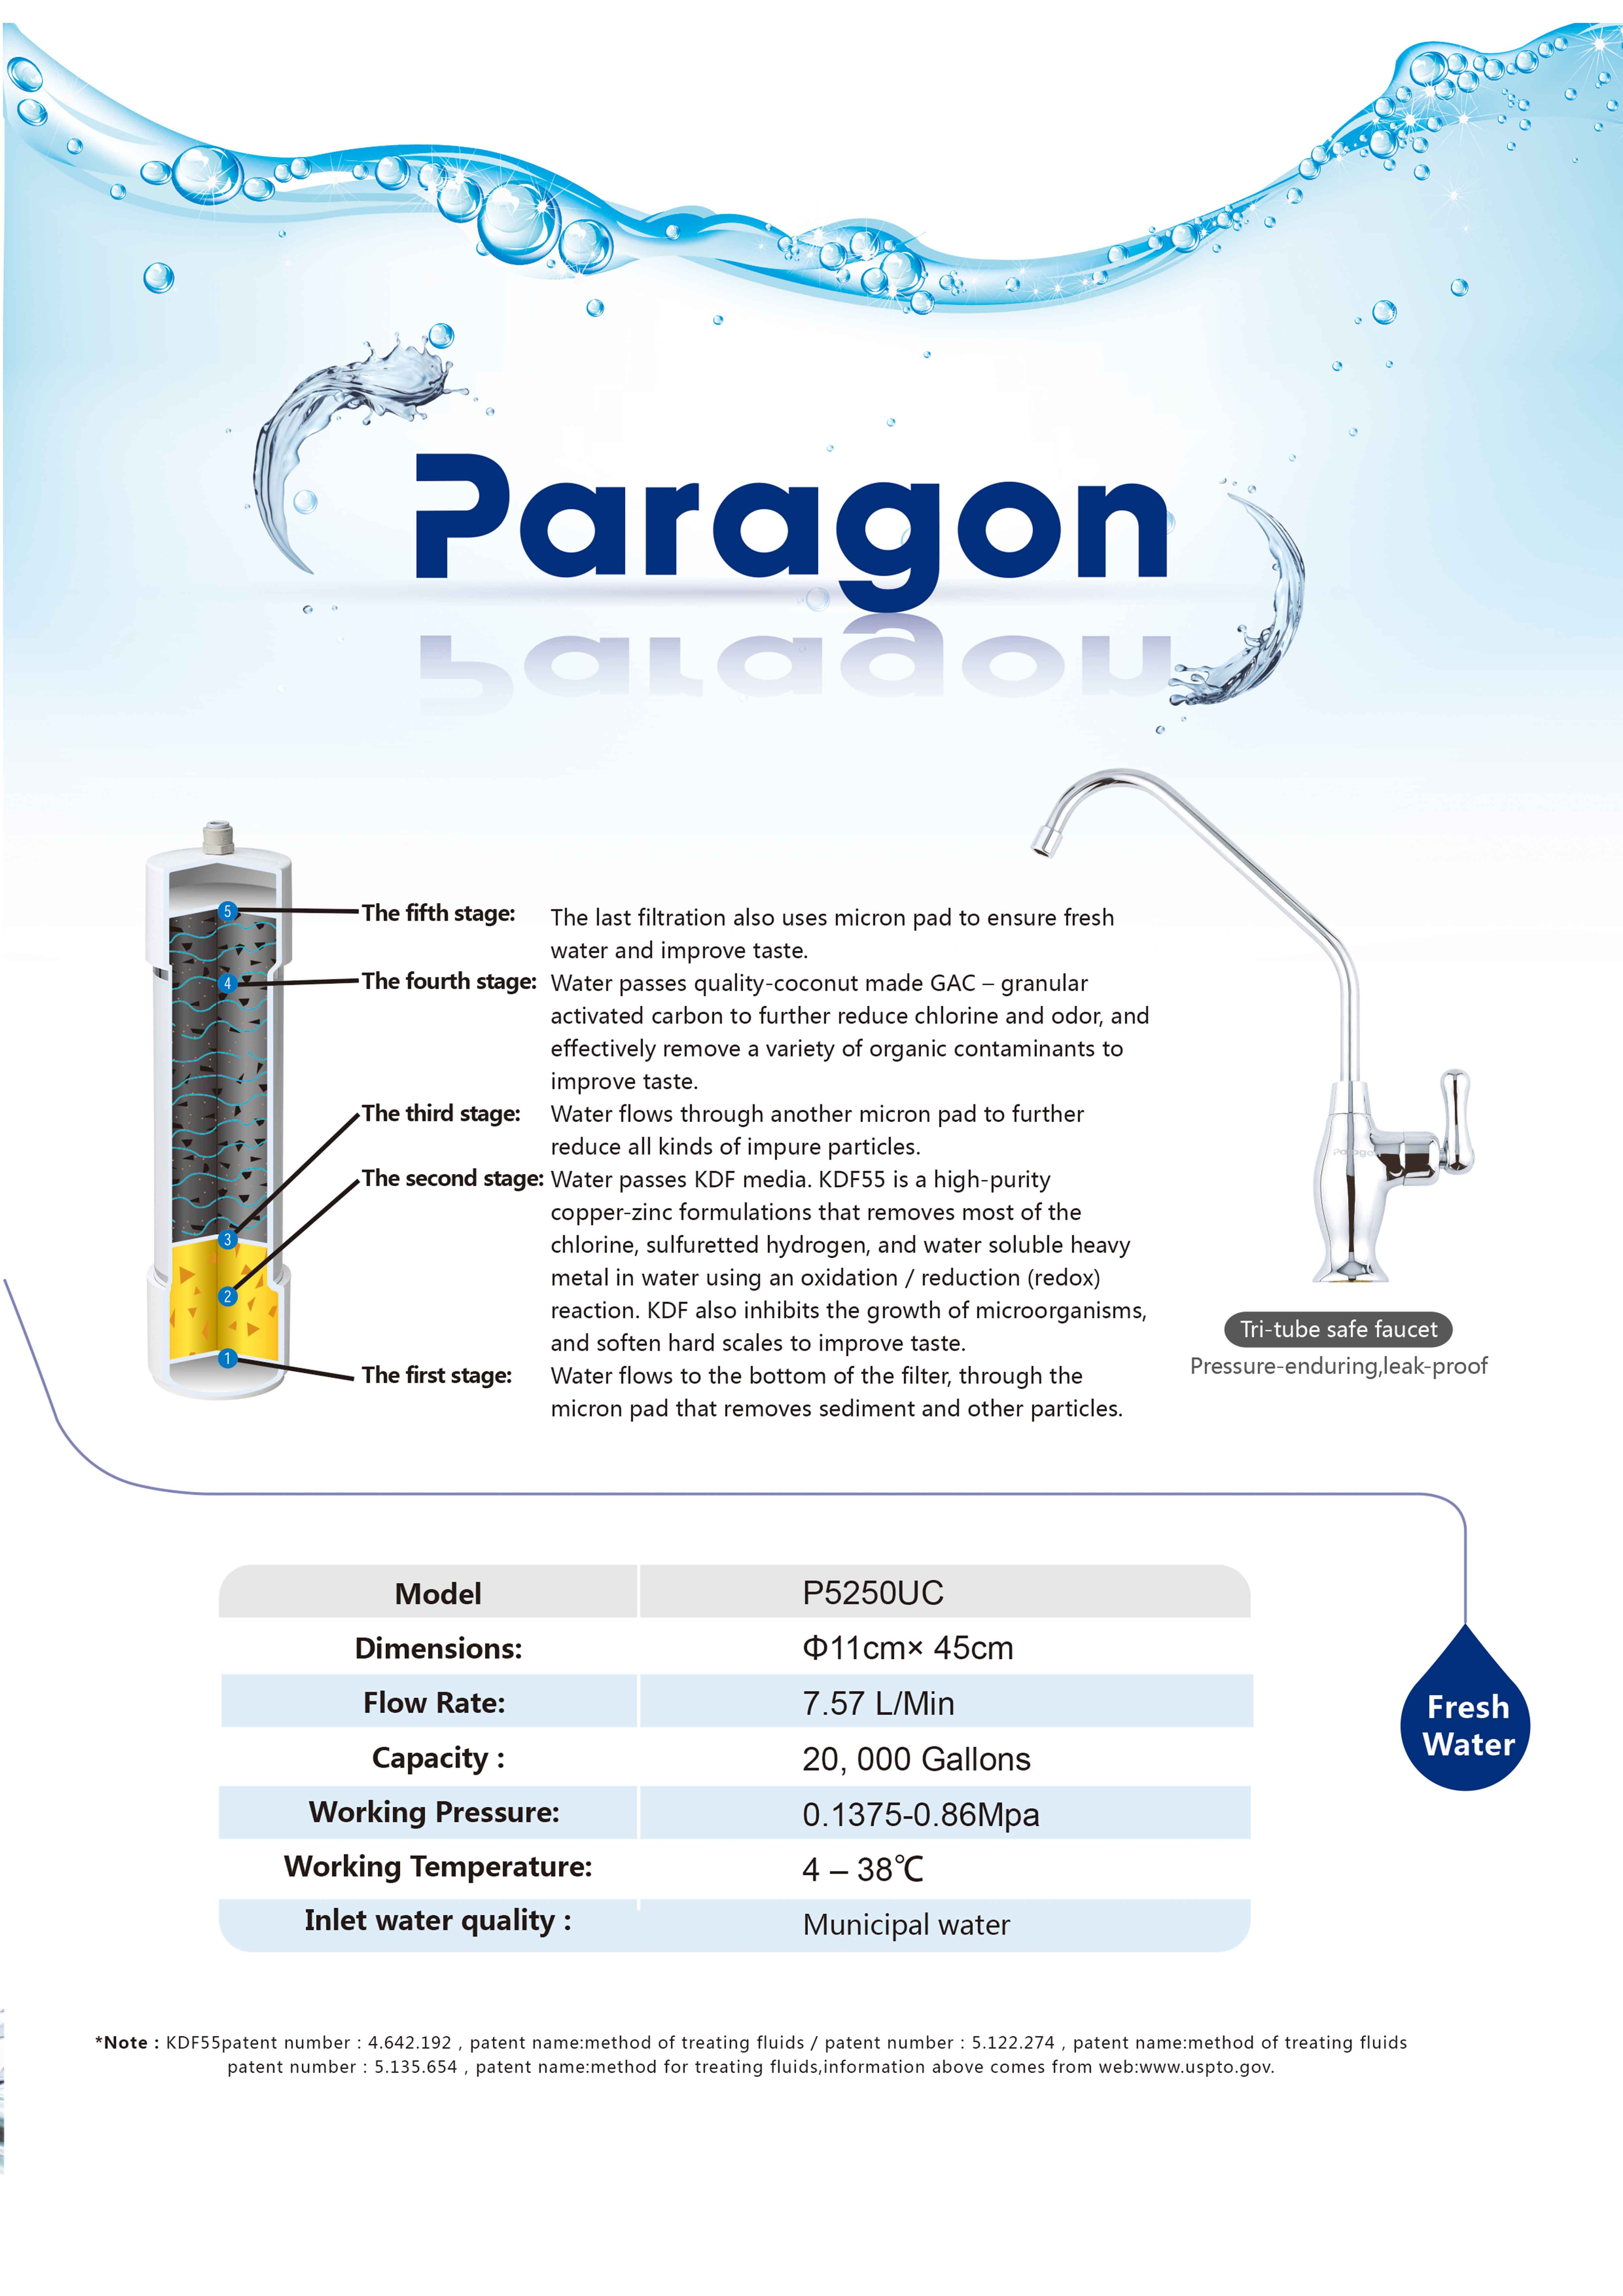 ParagonWater P5250 A4 P2s ENG